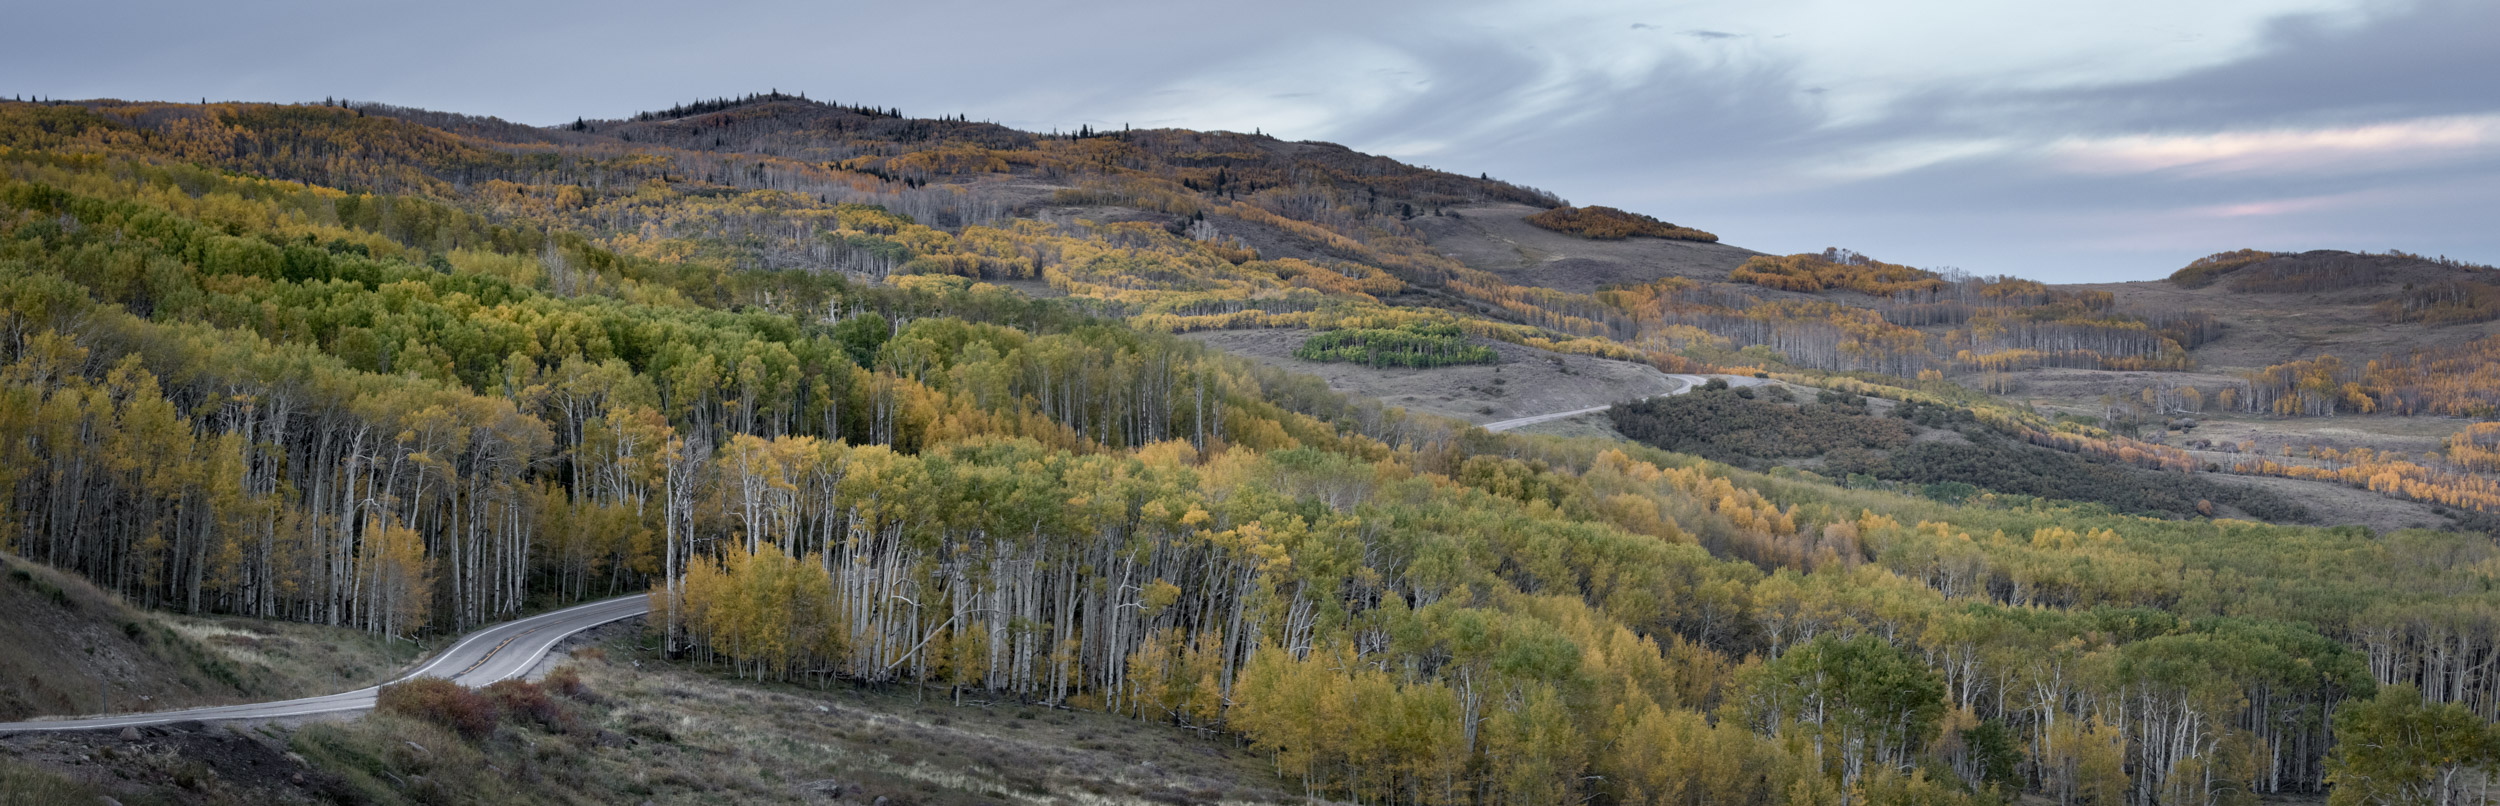 Aspen on Utah 12 (Click on image to enlarge)